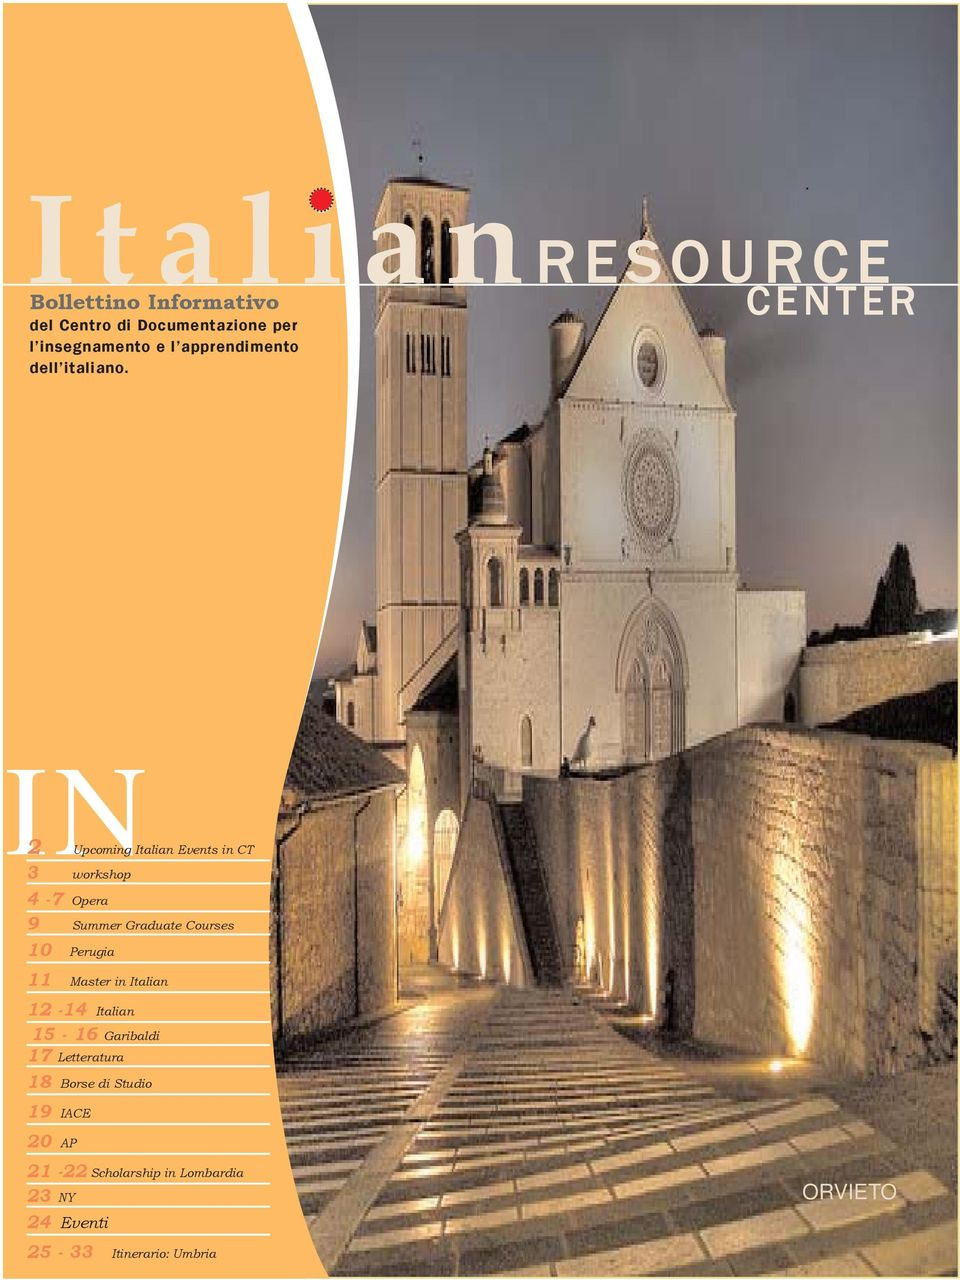 RESOURCE CENTER IN 2 Upcoming Italian Events in CT 3 workshop 4-7 Opera 9 Summer Graduate Courses